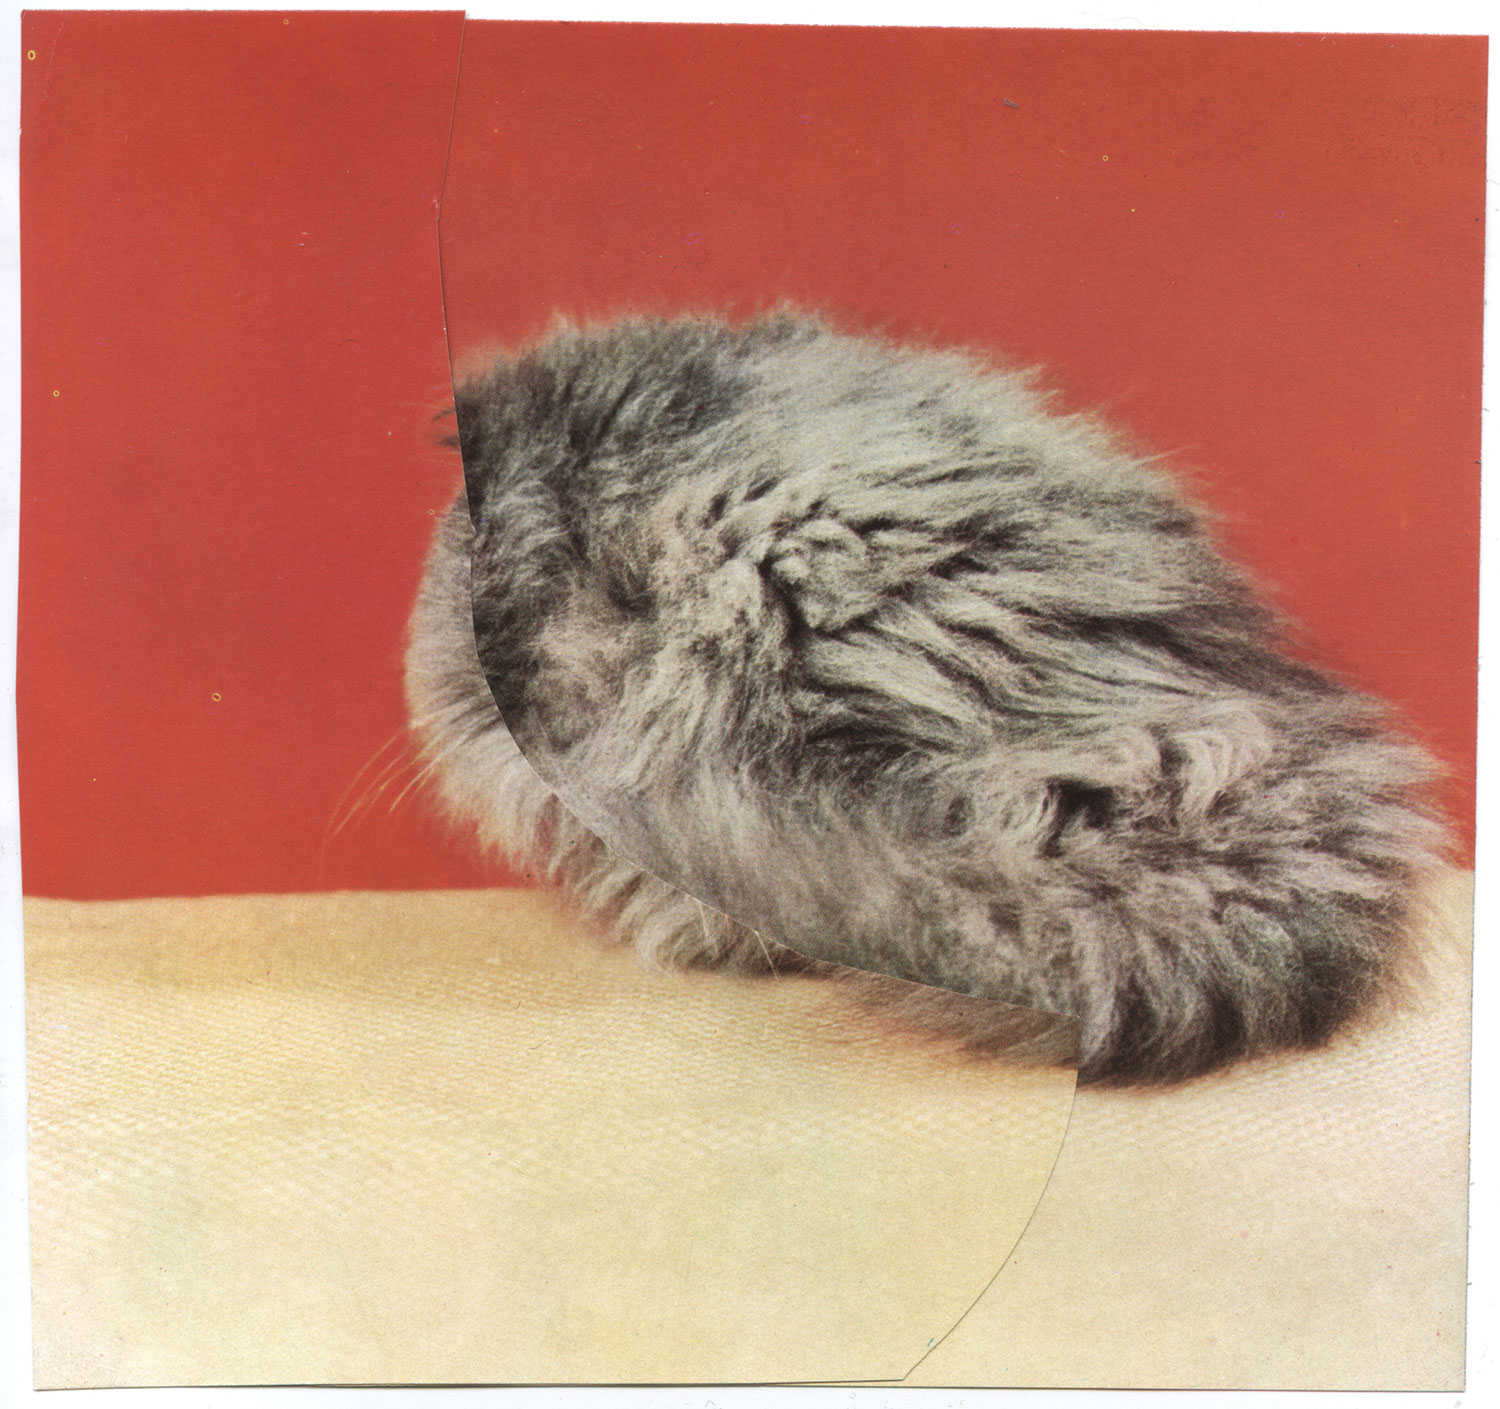 Untitled (Silver Tabby) Collage, 2010